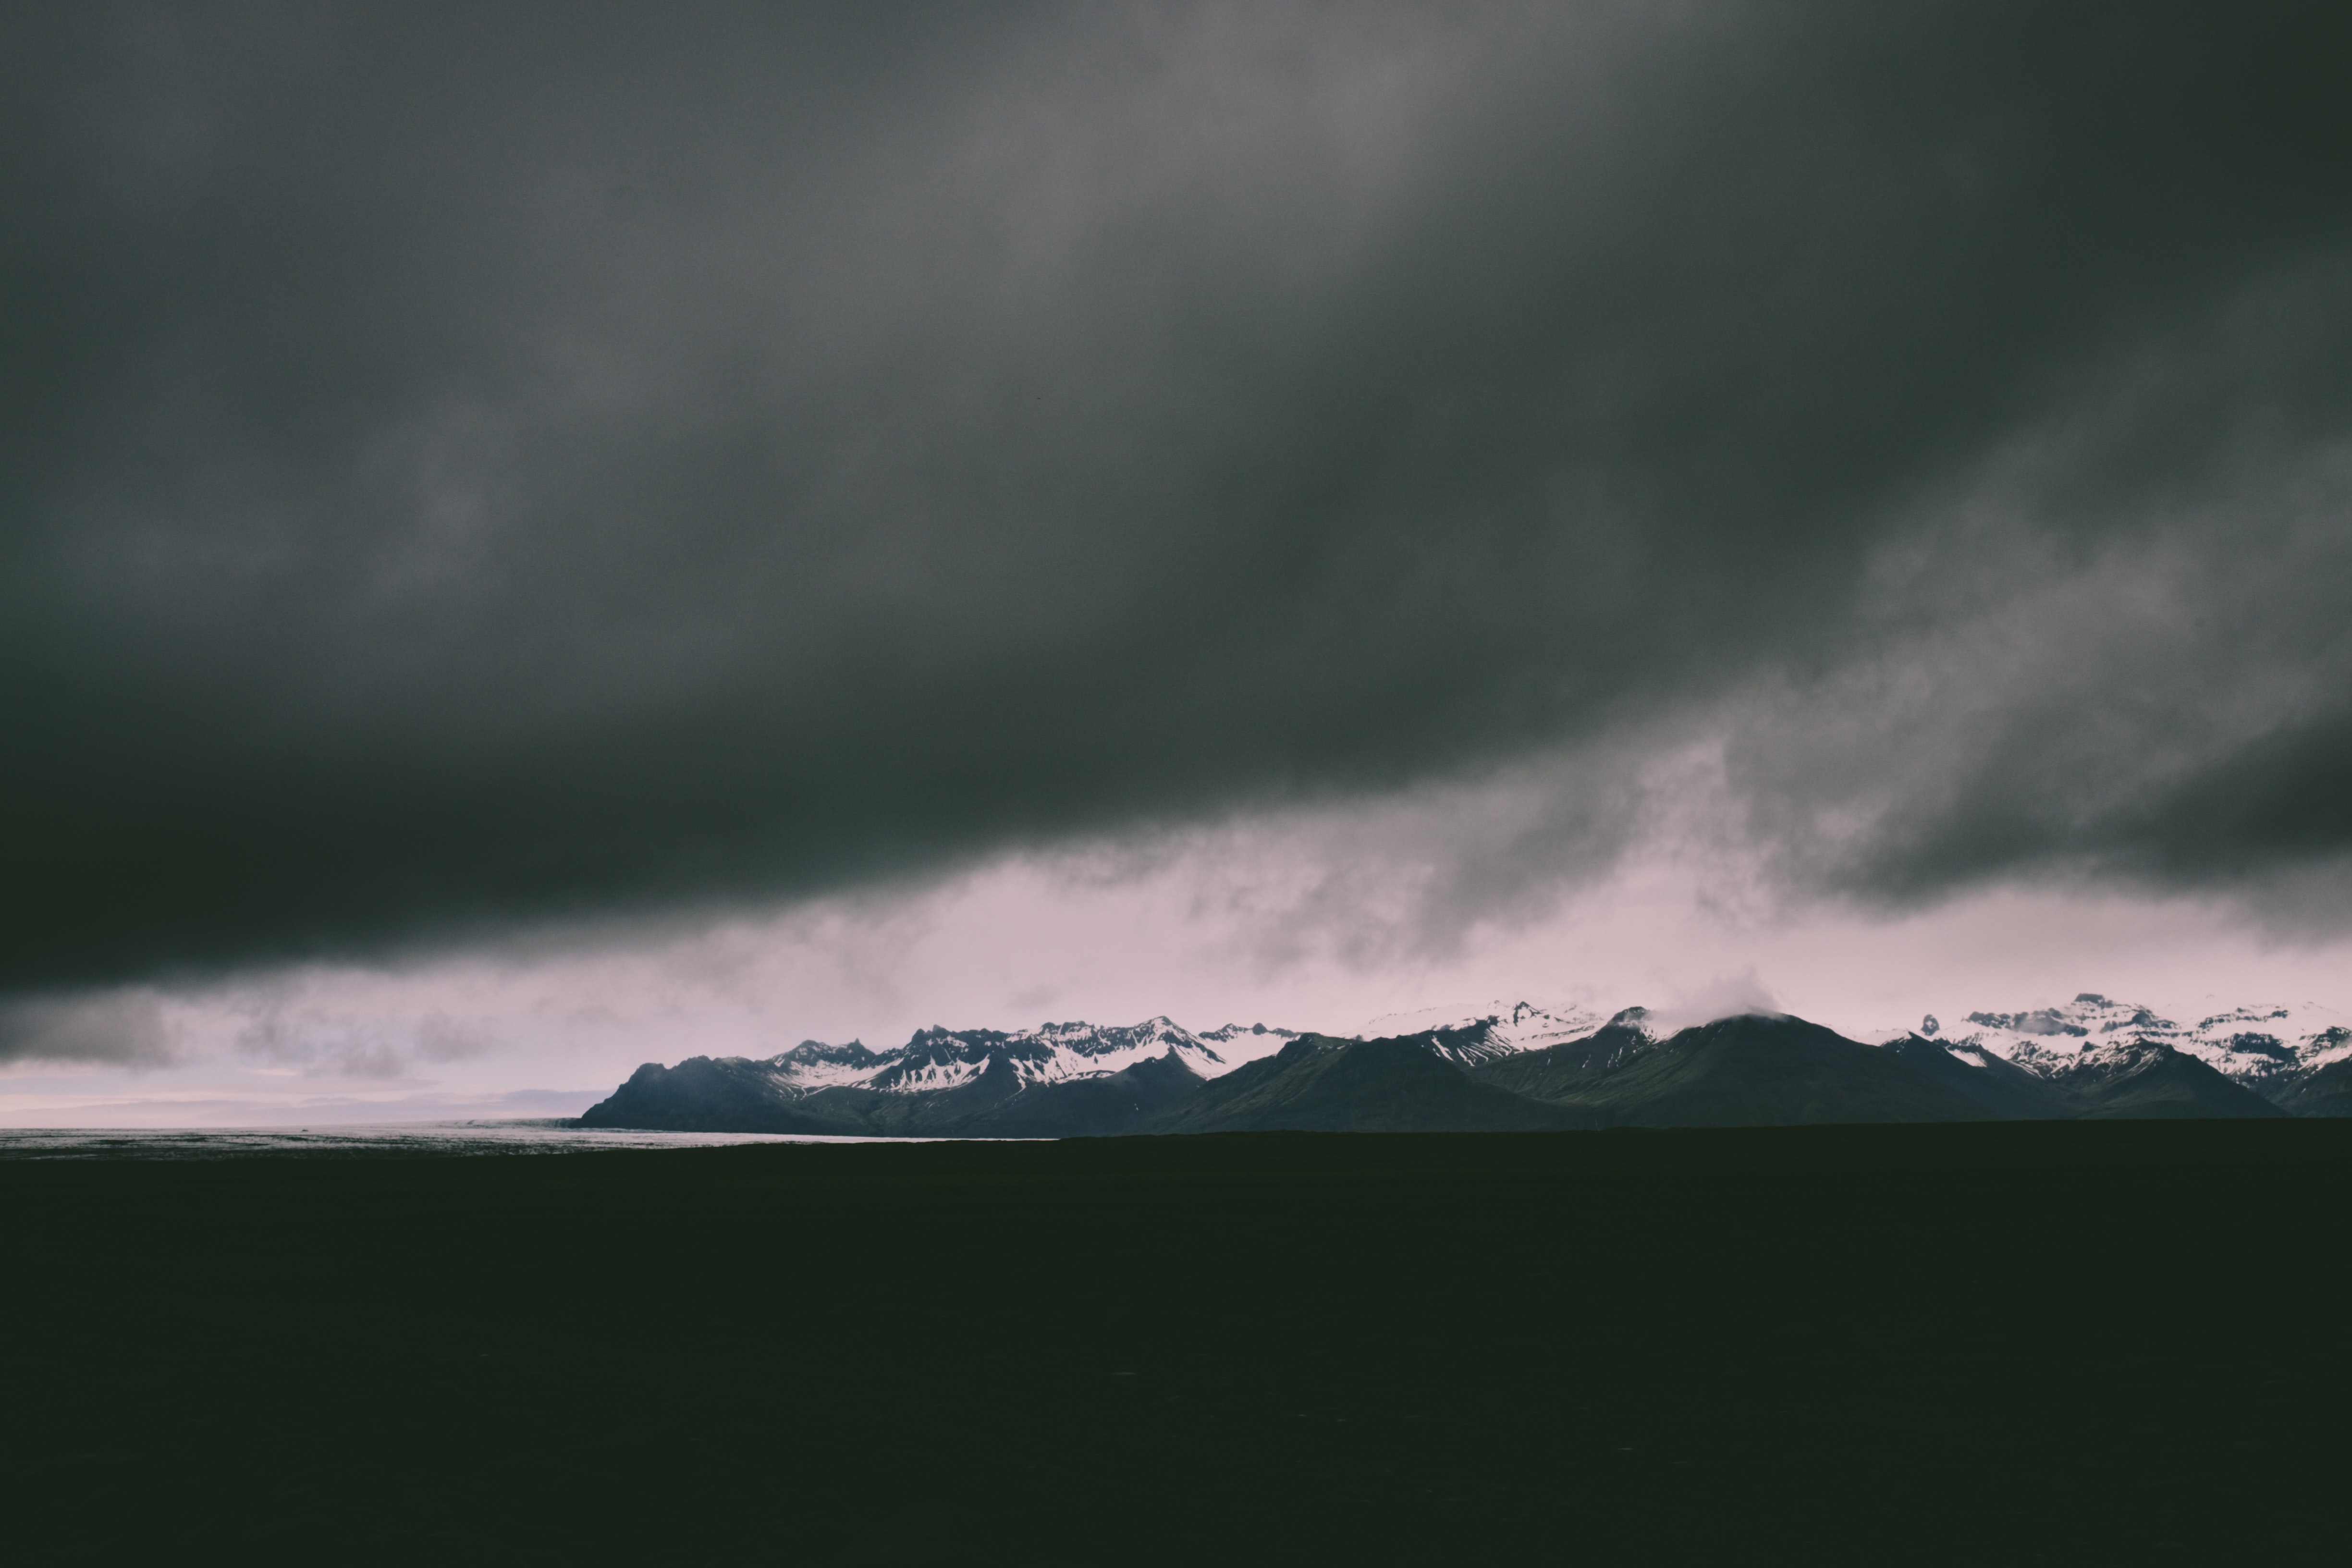 A threatening cloud over a distant mountain range